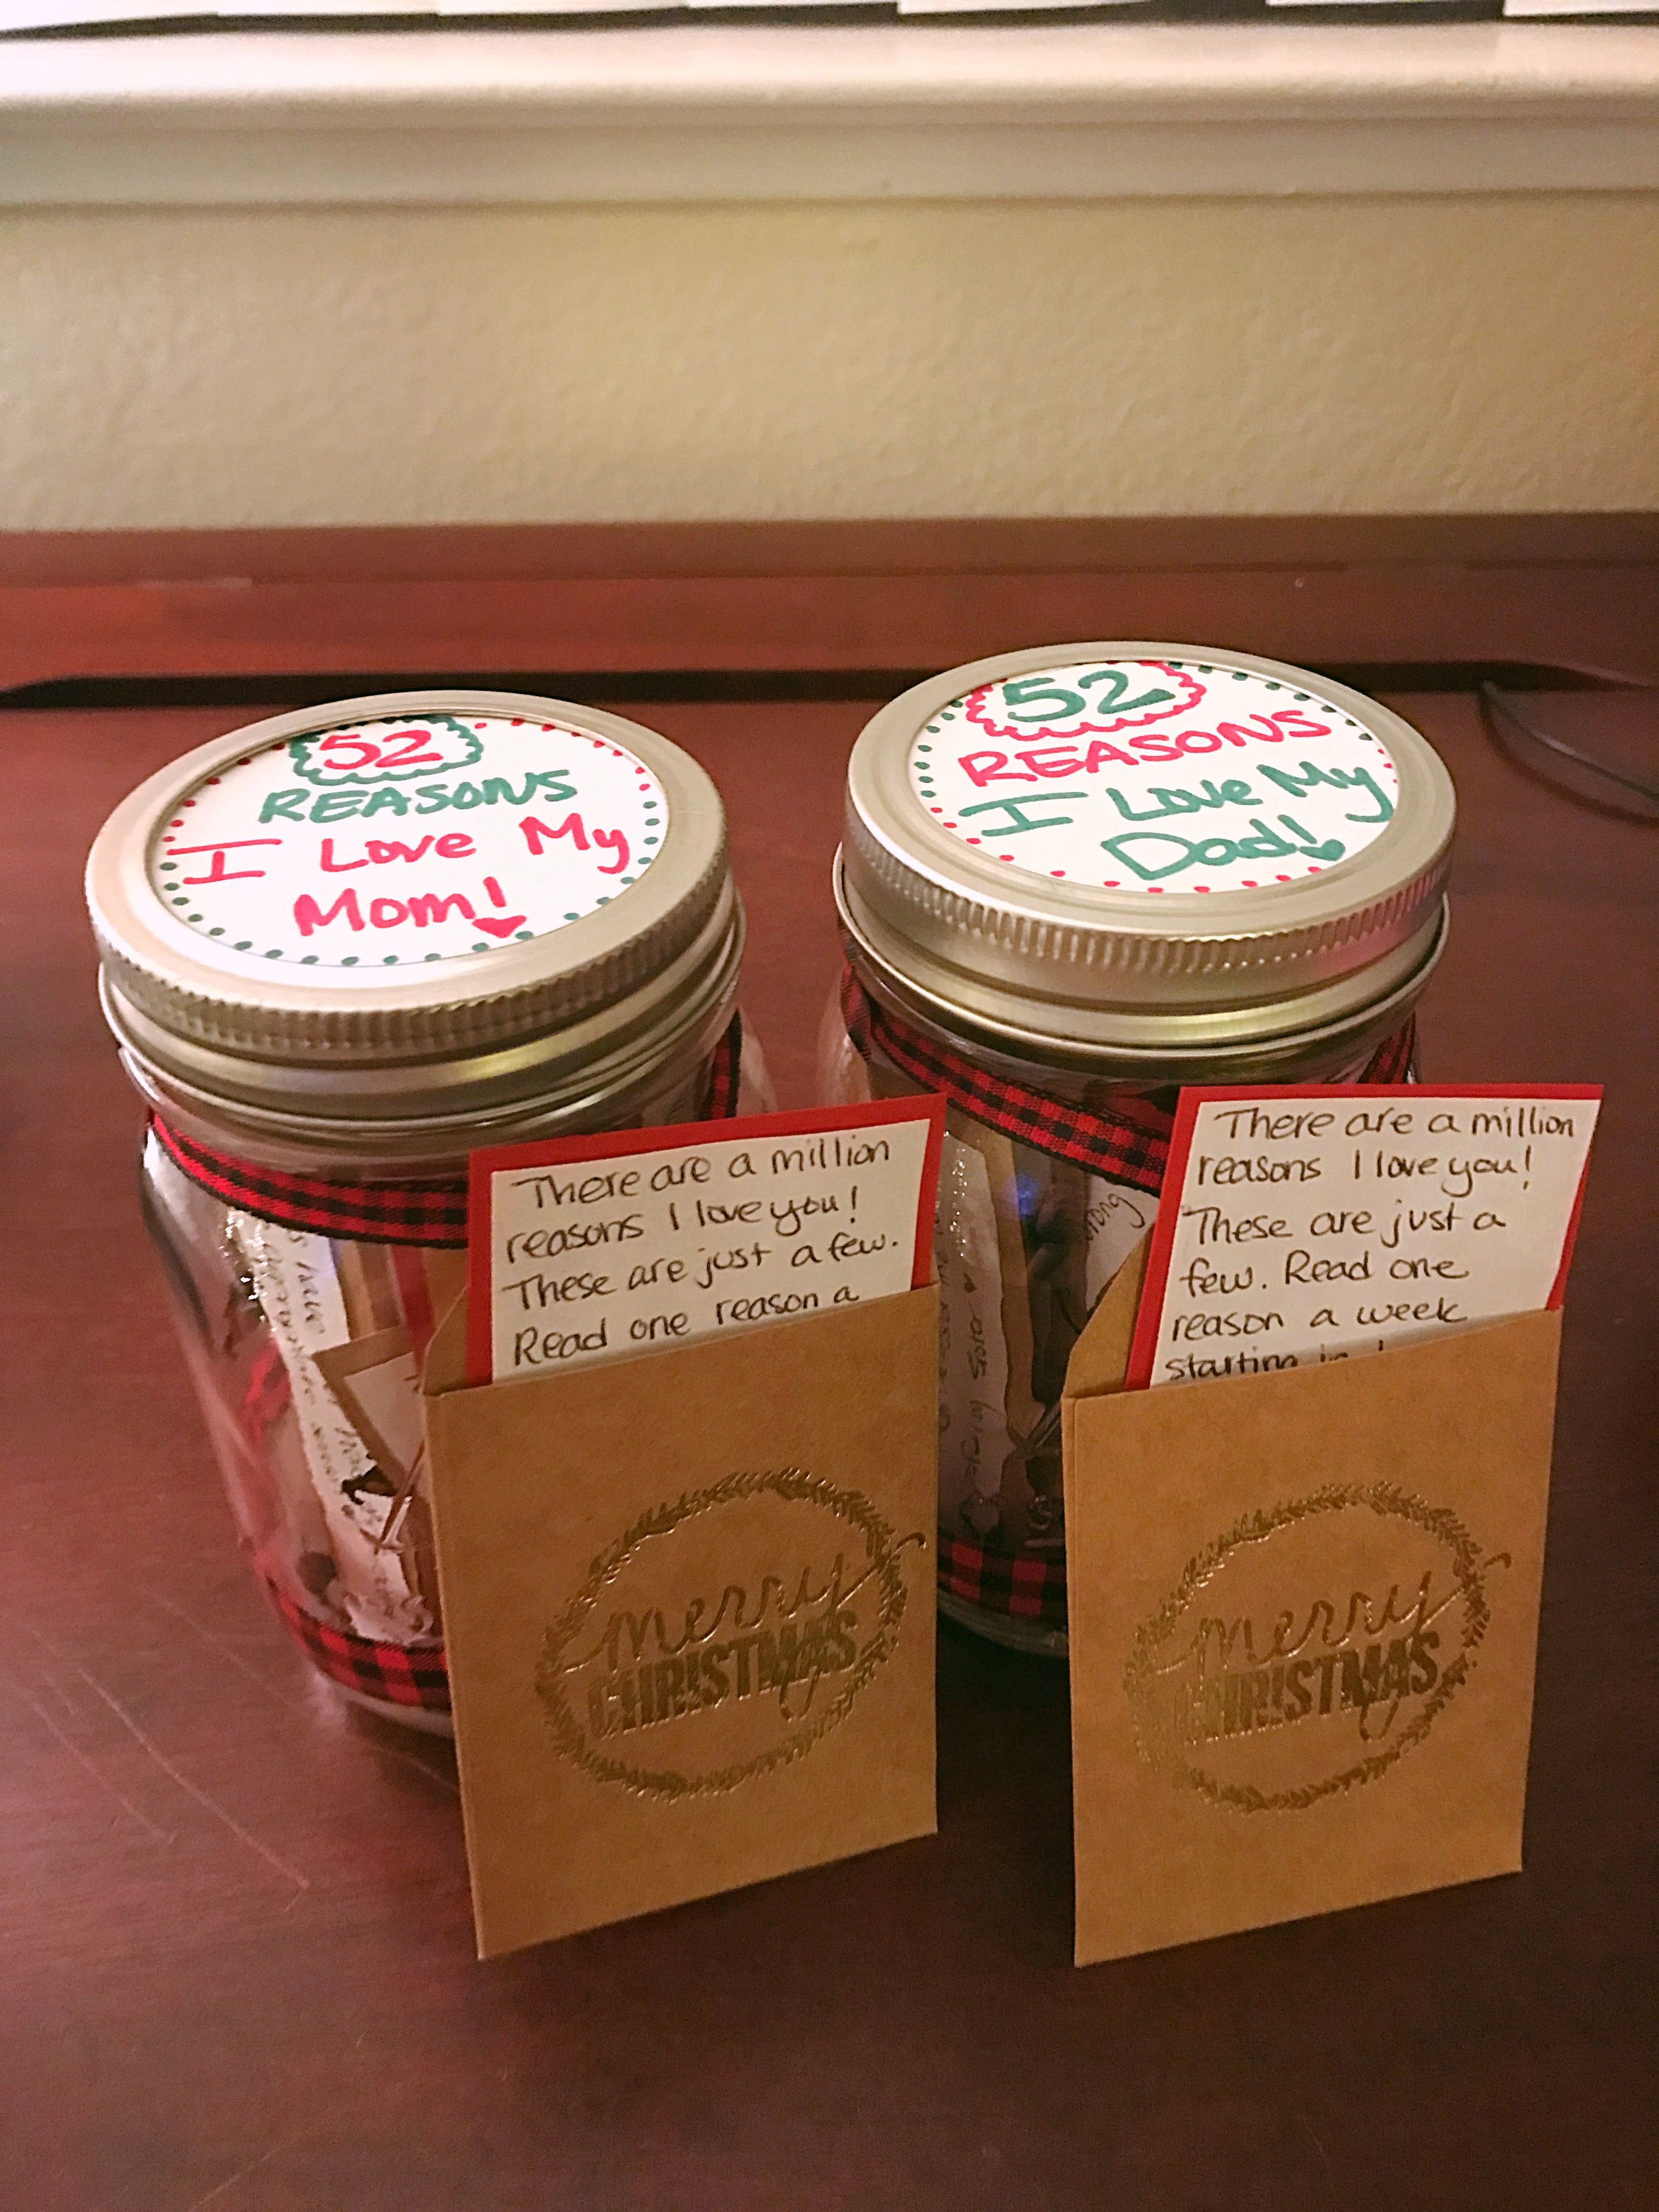 Diy Gift For Mom And Dad 52 Reasons I Love